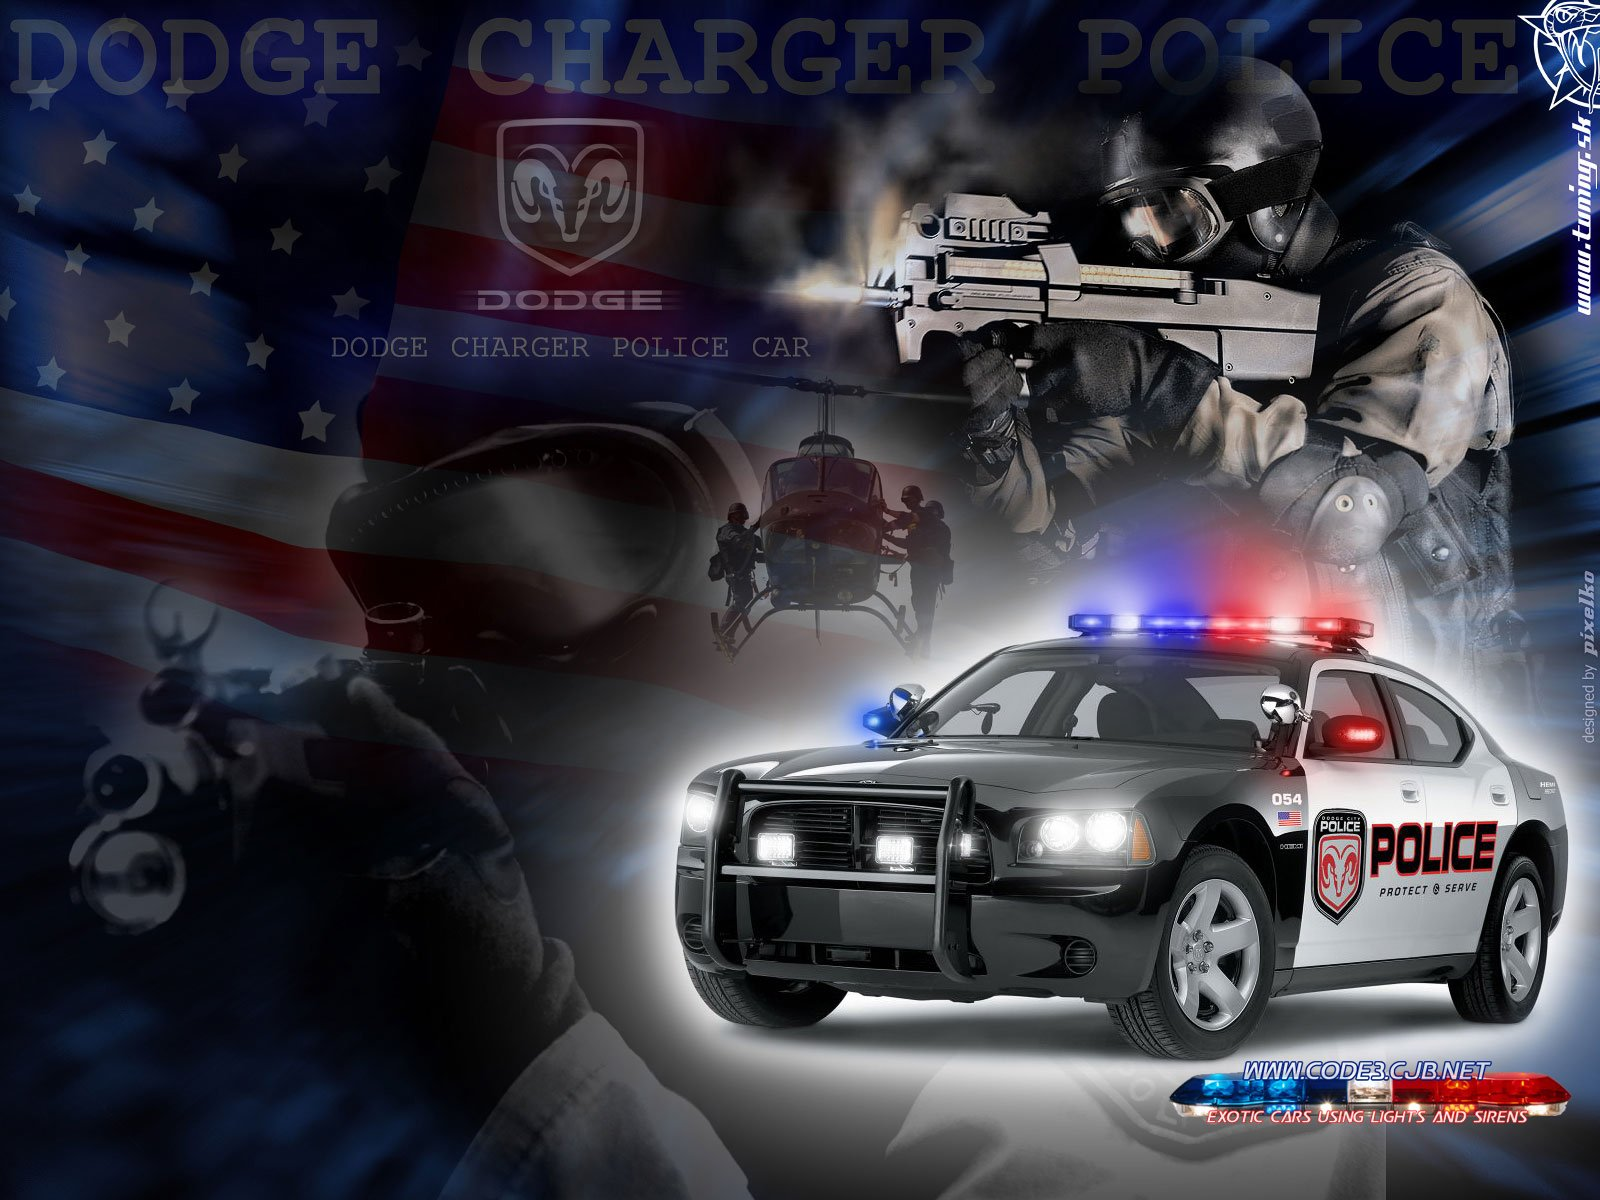 Used Sport Car 2011 dodge police charger wallpapers and prices 1600x1200